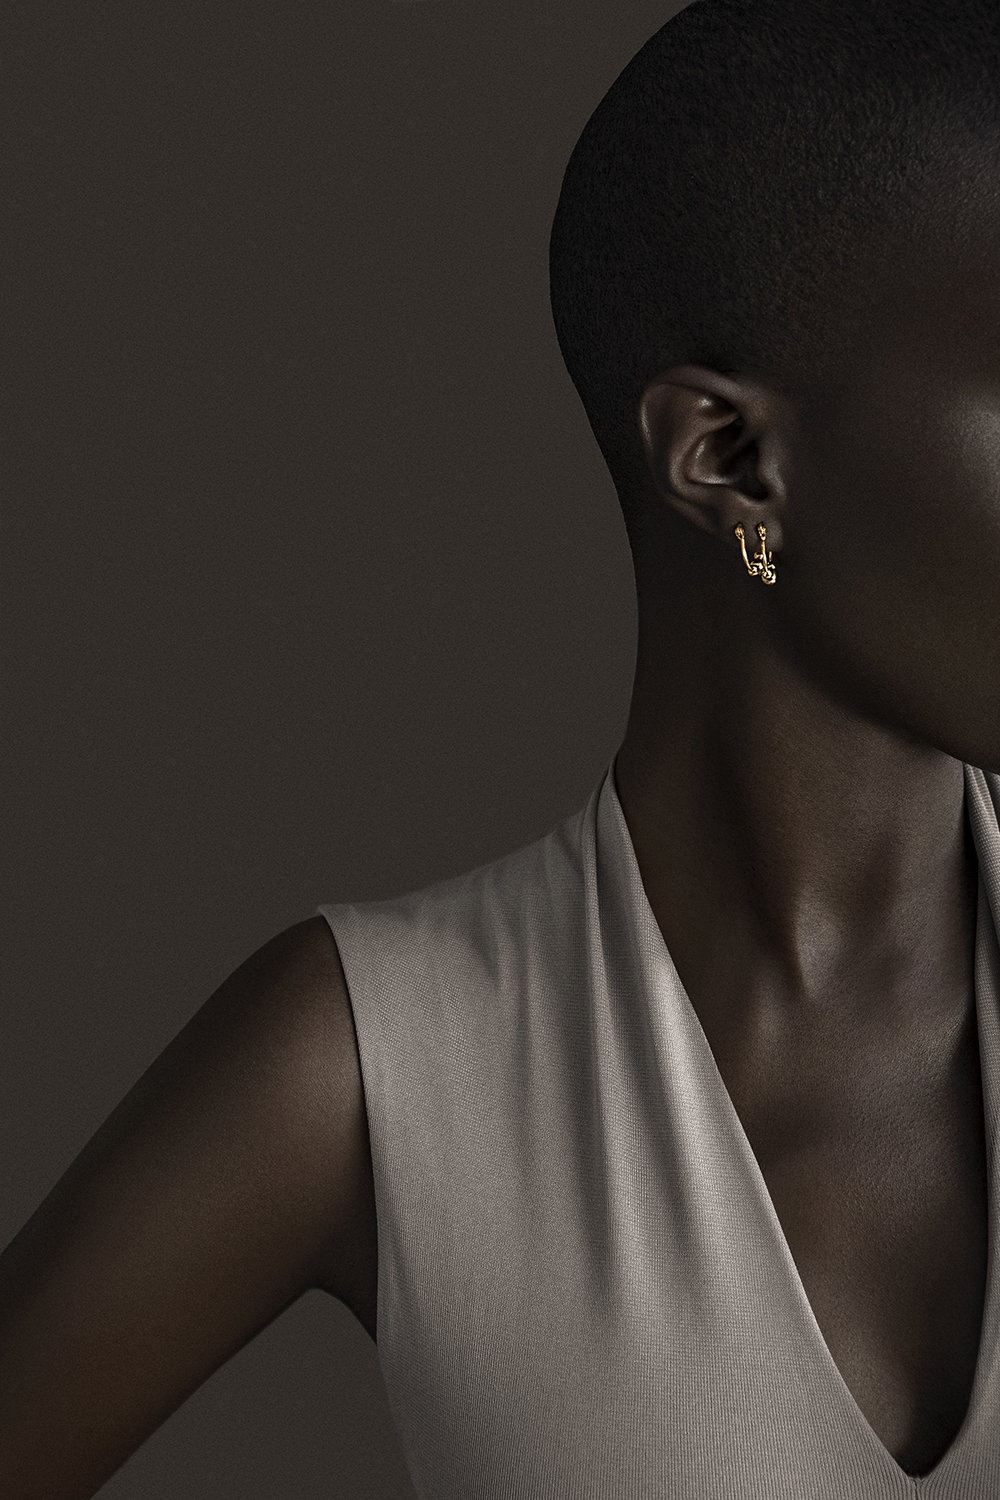 Giannina oteto for nashira arno fashion jewerly nyc based  latin american designer from dominican republic  modern sculptural statement gold ball sphere small hoops.jpg